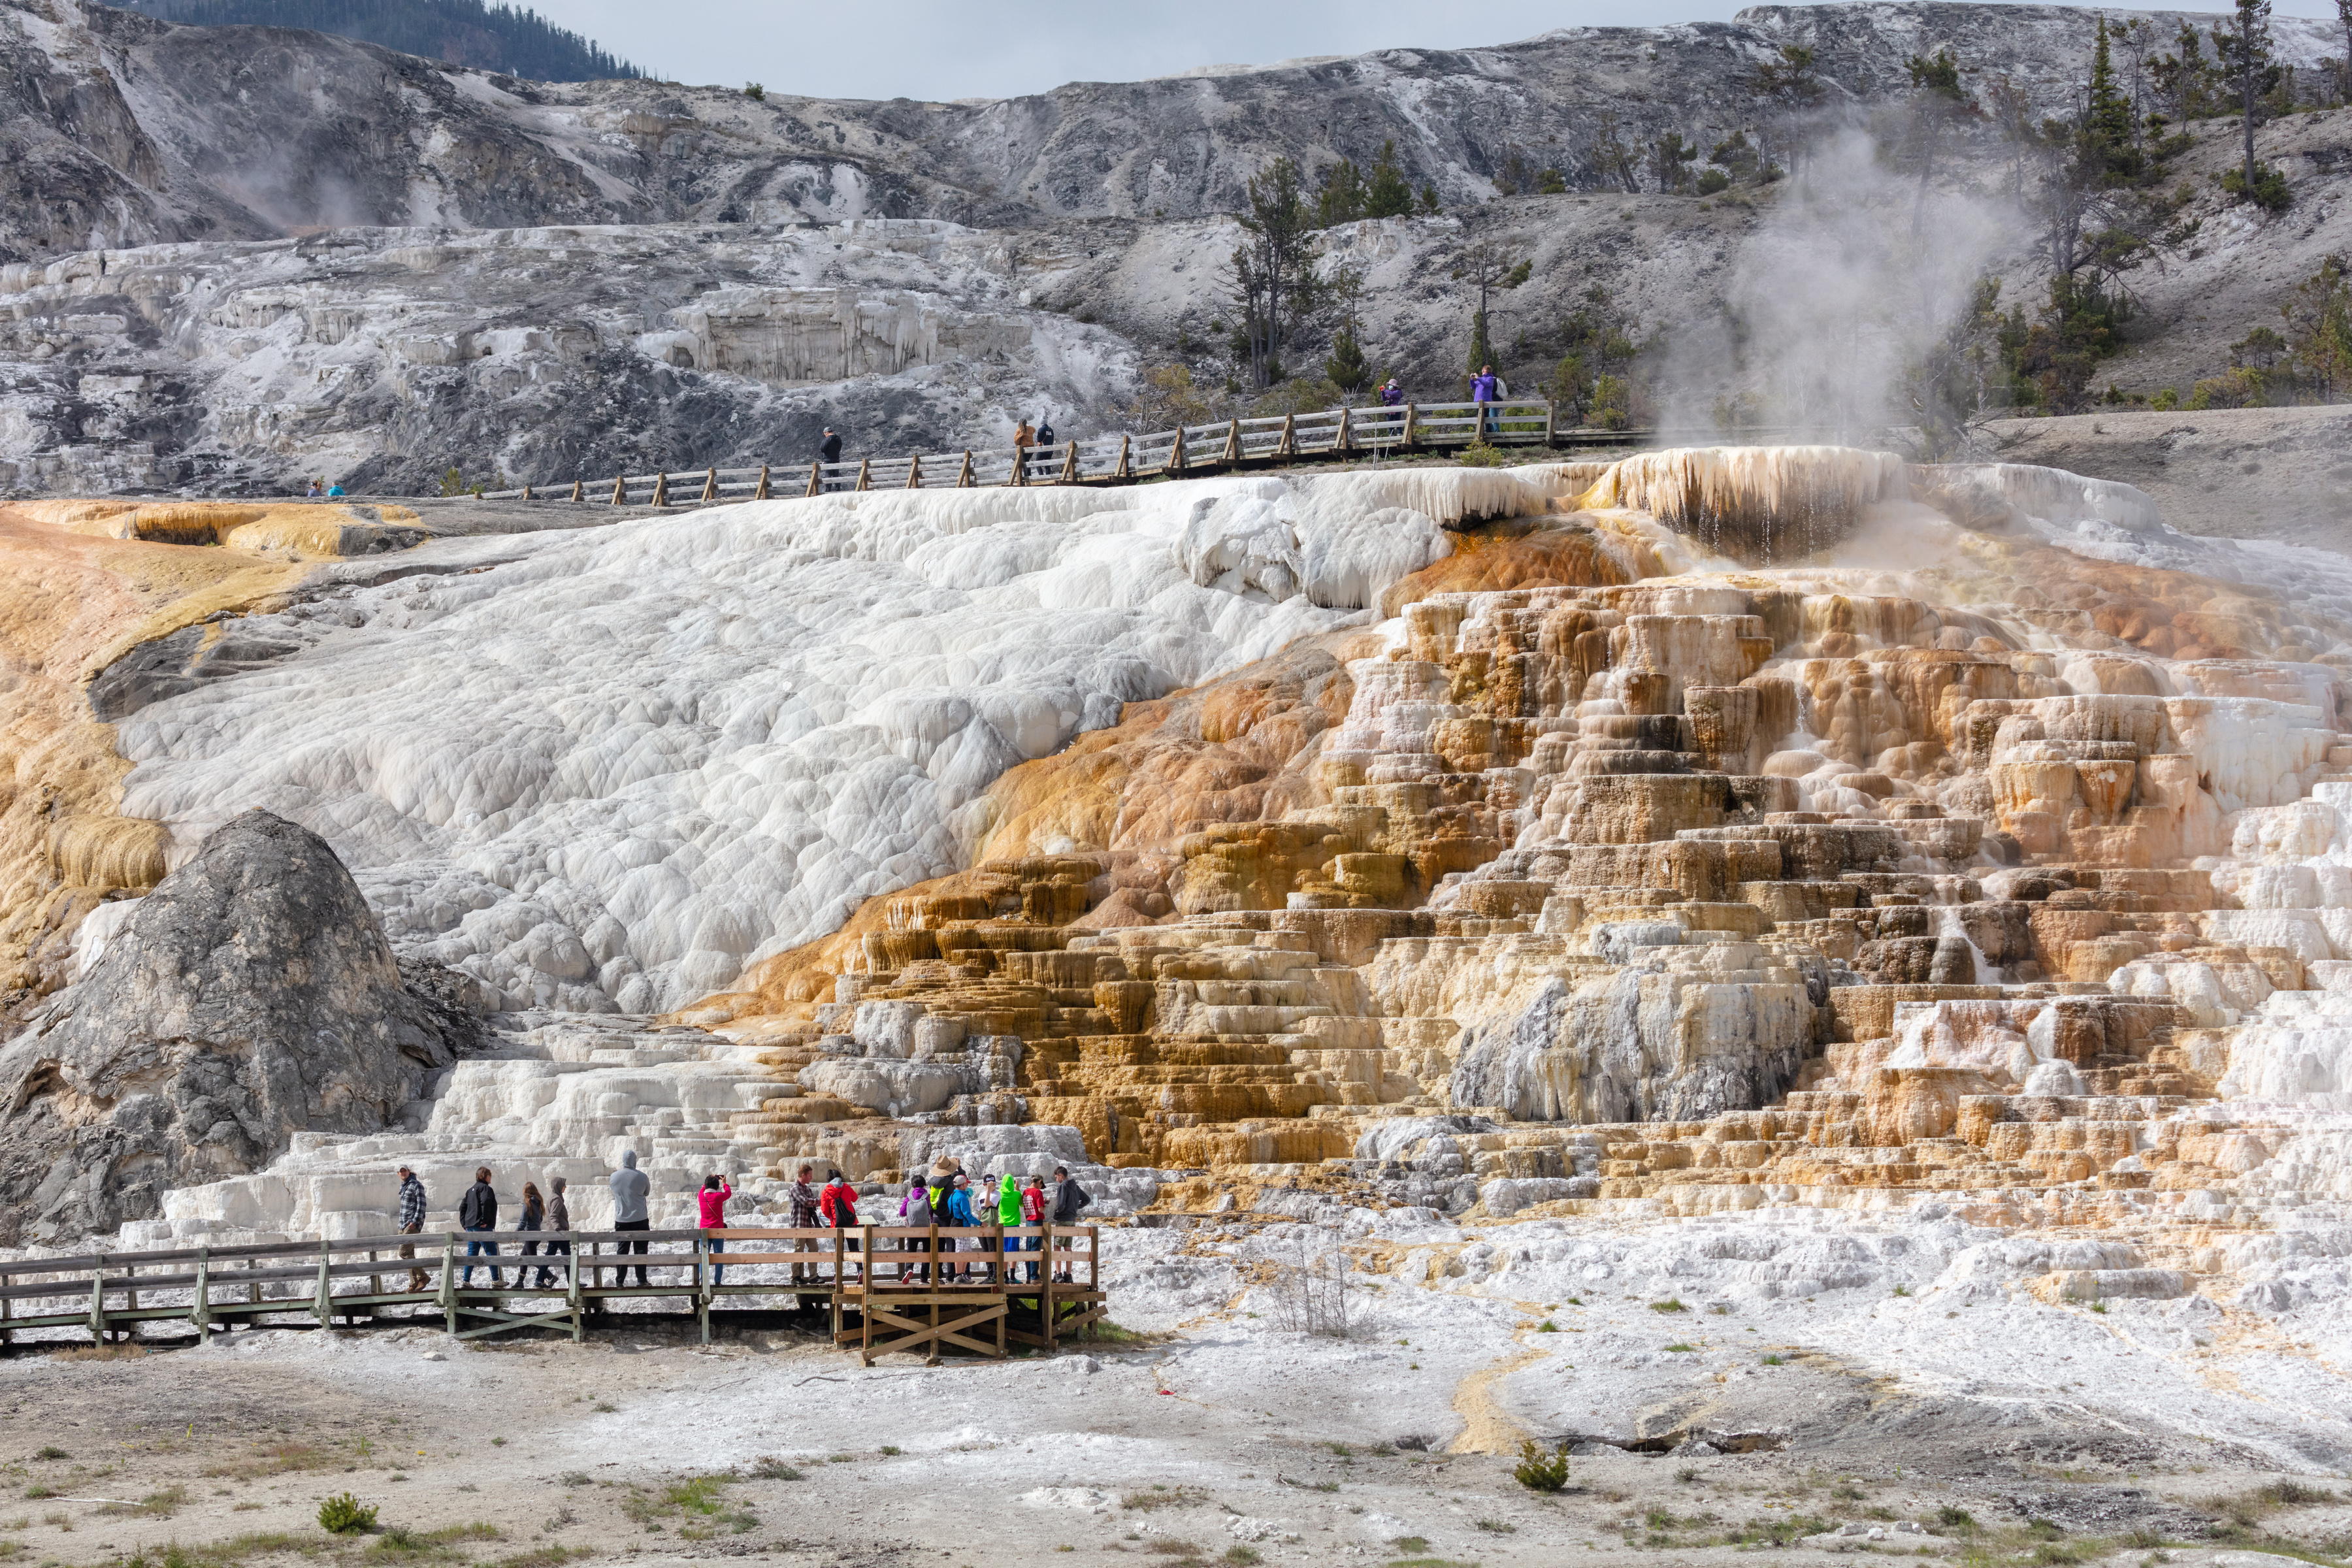 People exploring the Mammoth Hot Spring Boardwalks